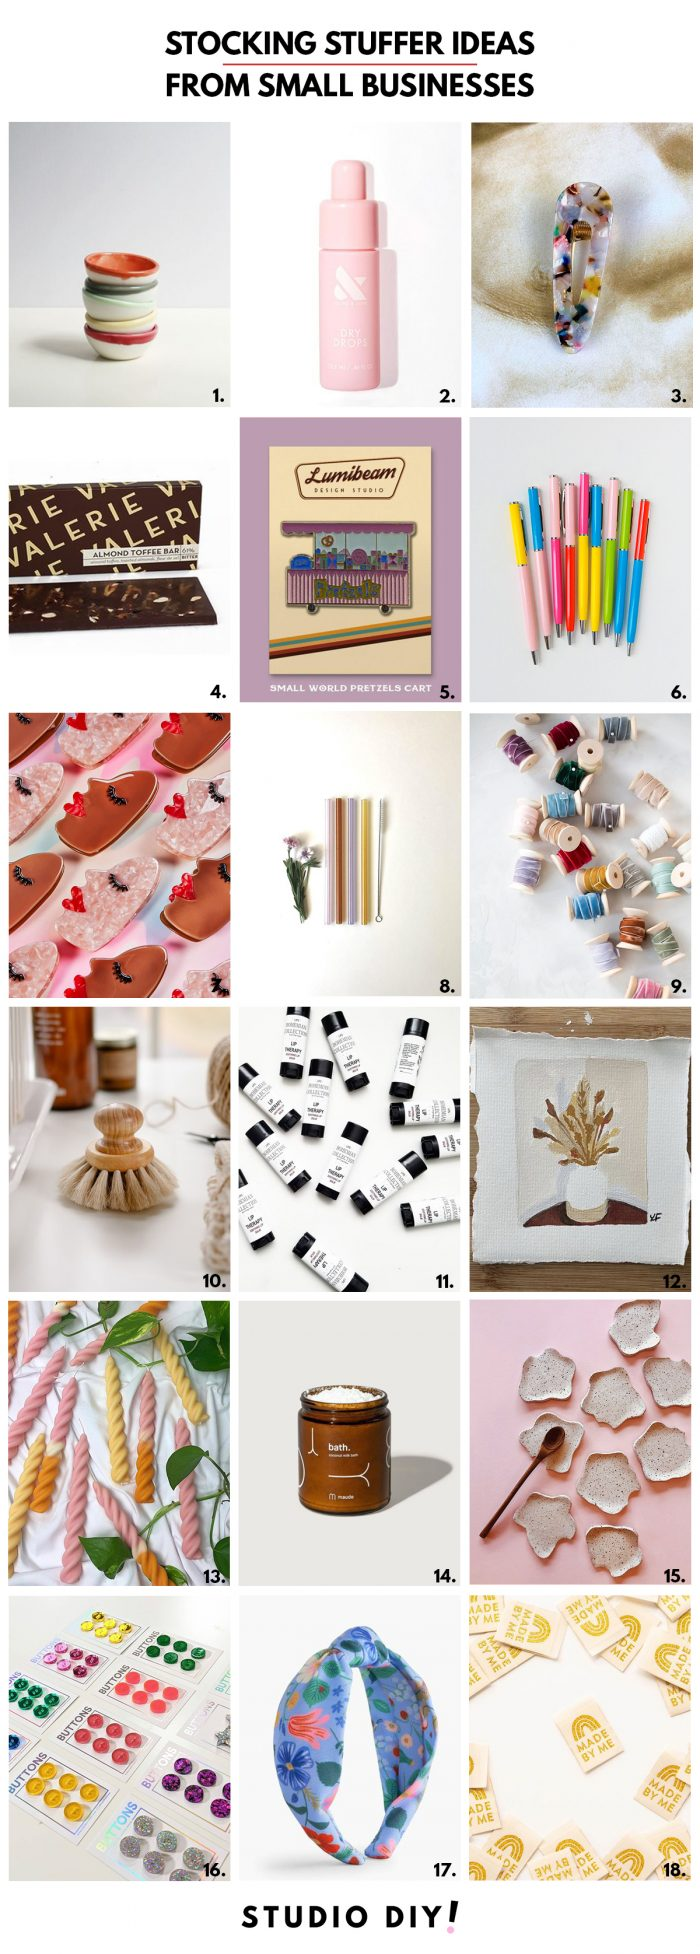 Stocking Stuffers from Small Businesses